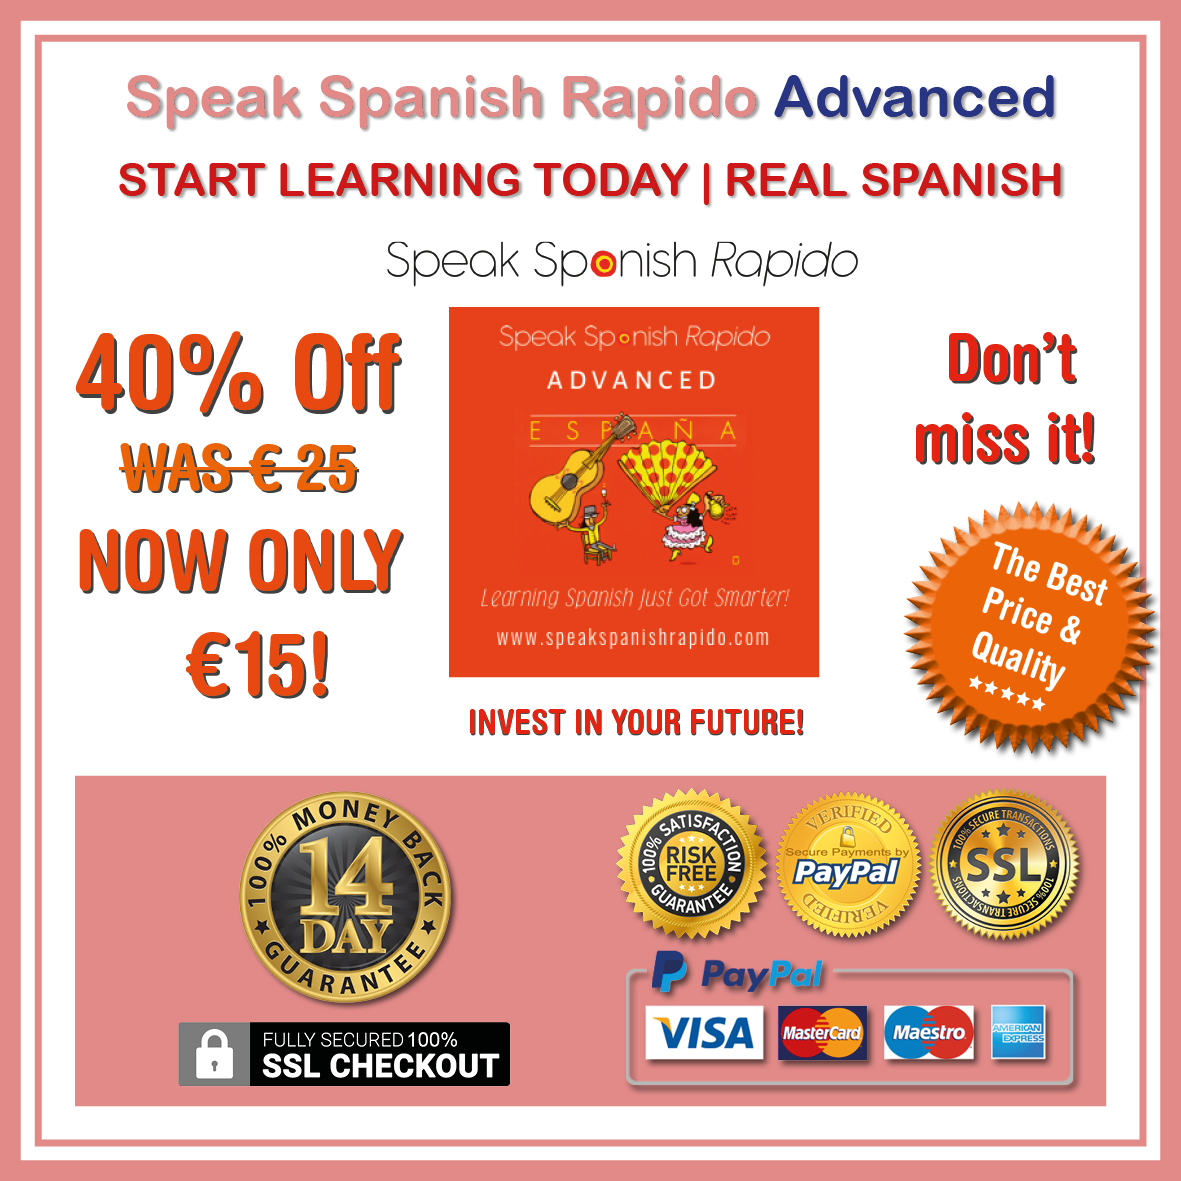 Speak Spanish Rapido